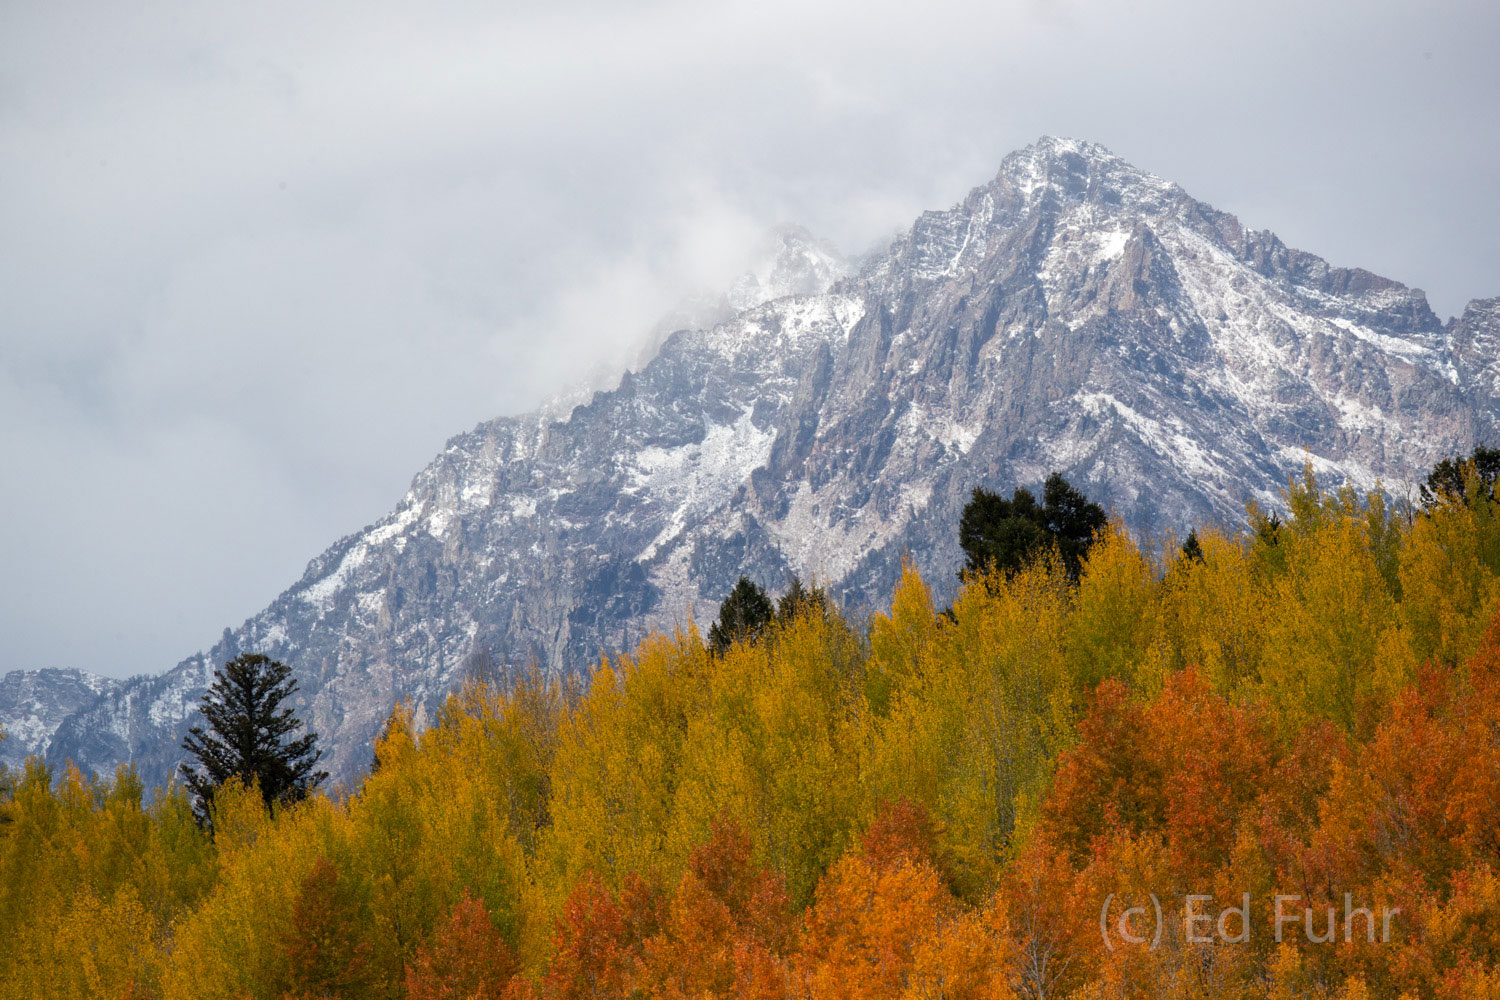 An early snow has coated the Teton Range above the still colorful ridges below.